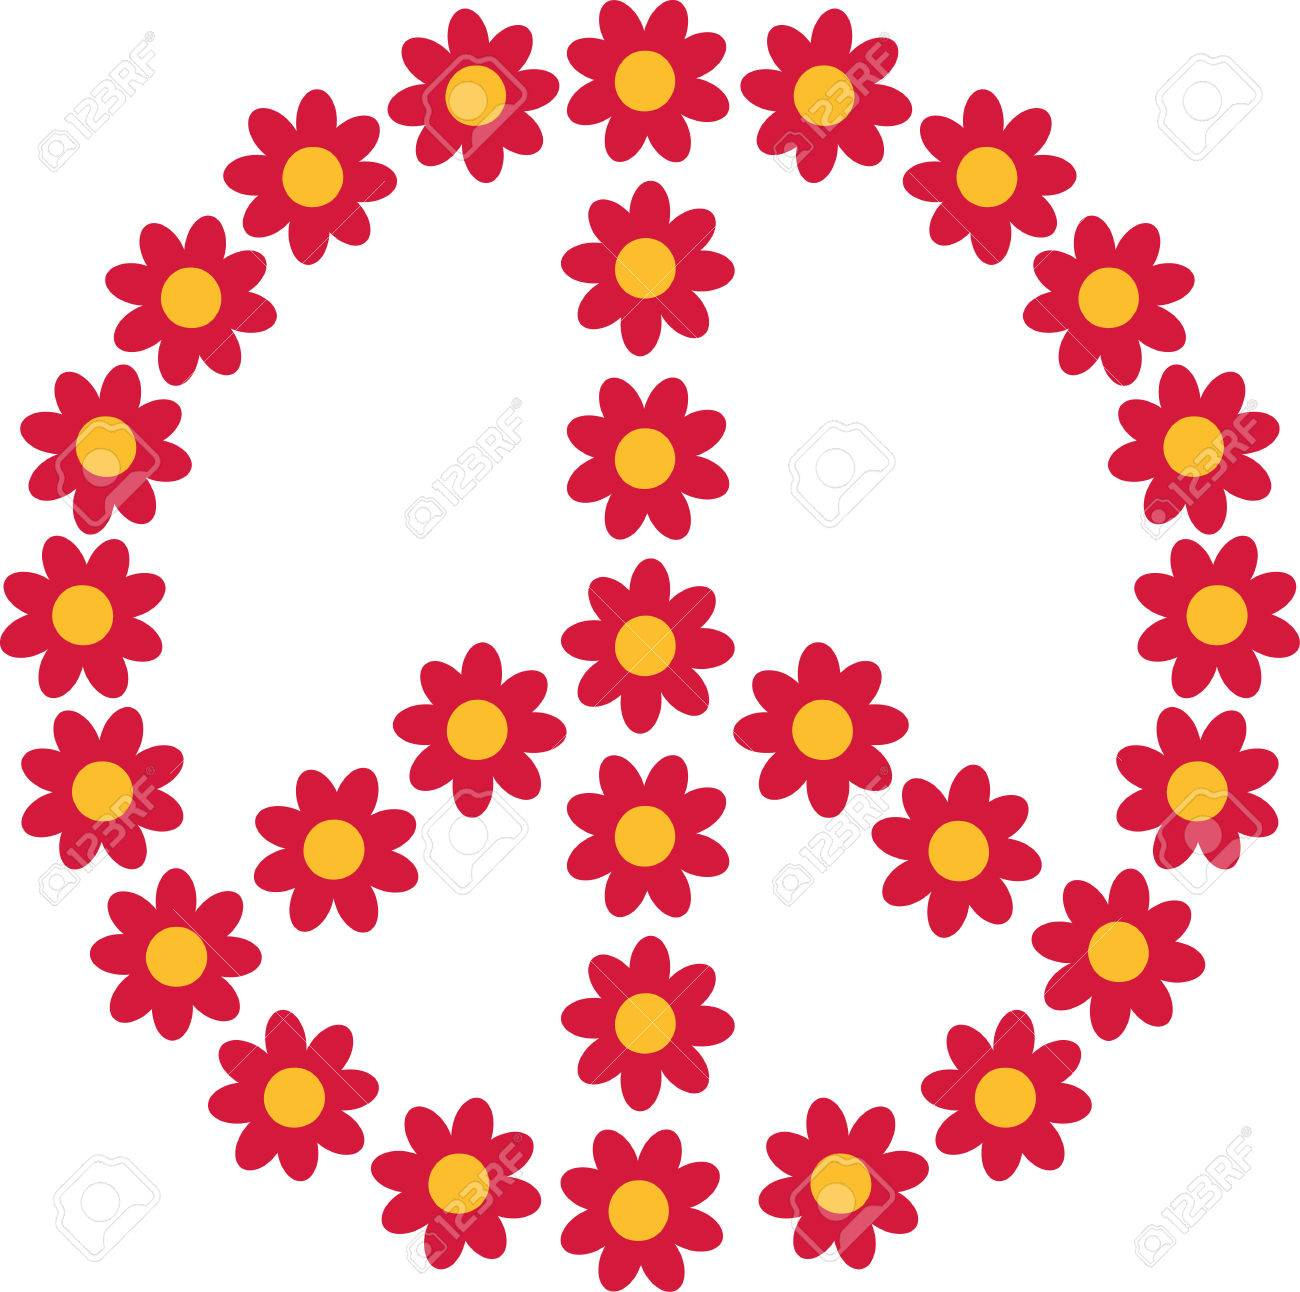 Flower Power Piece Sign Royalty Free Cliparts Vectors And Stock Illustration Image 53111225